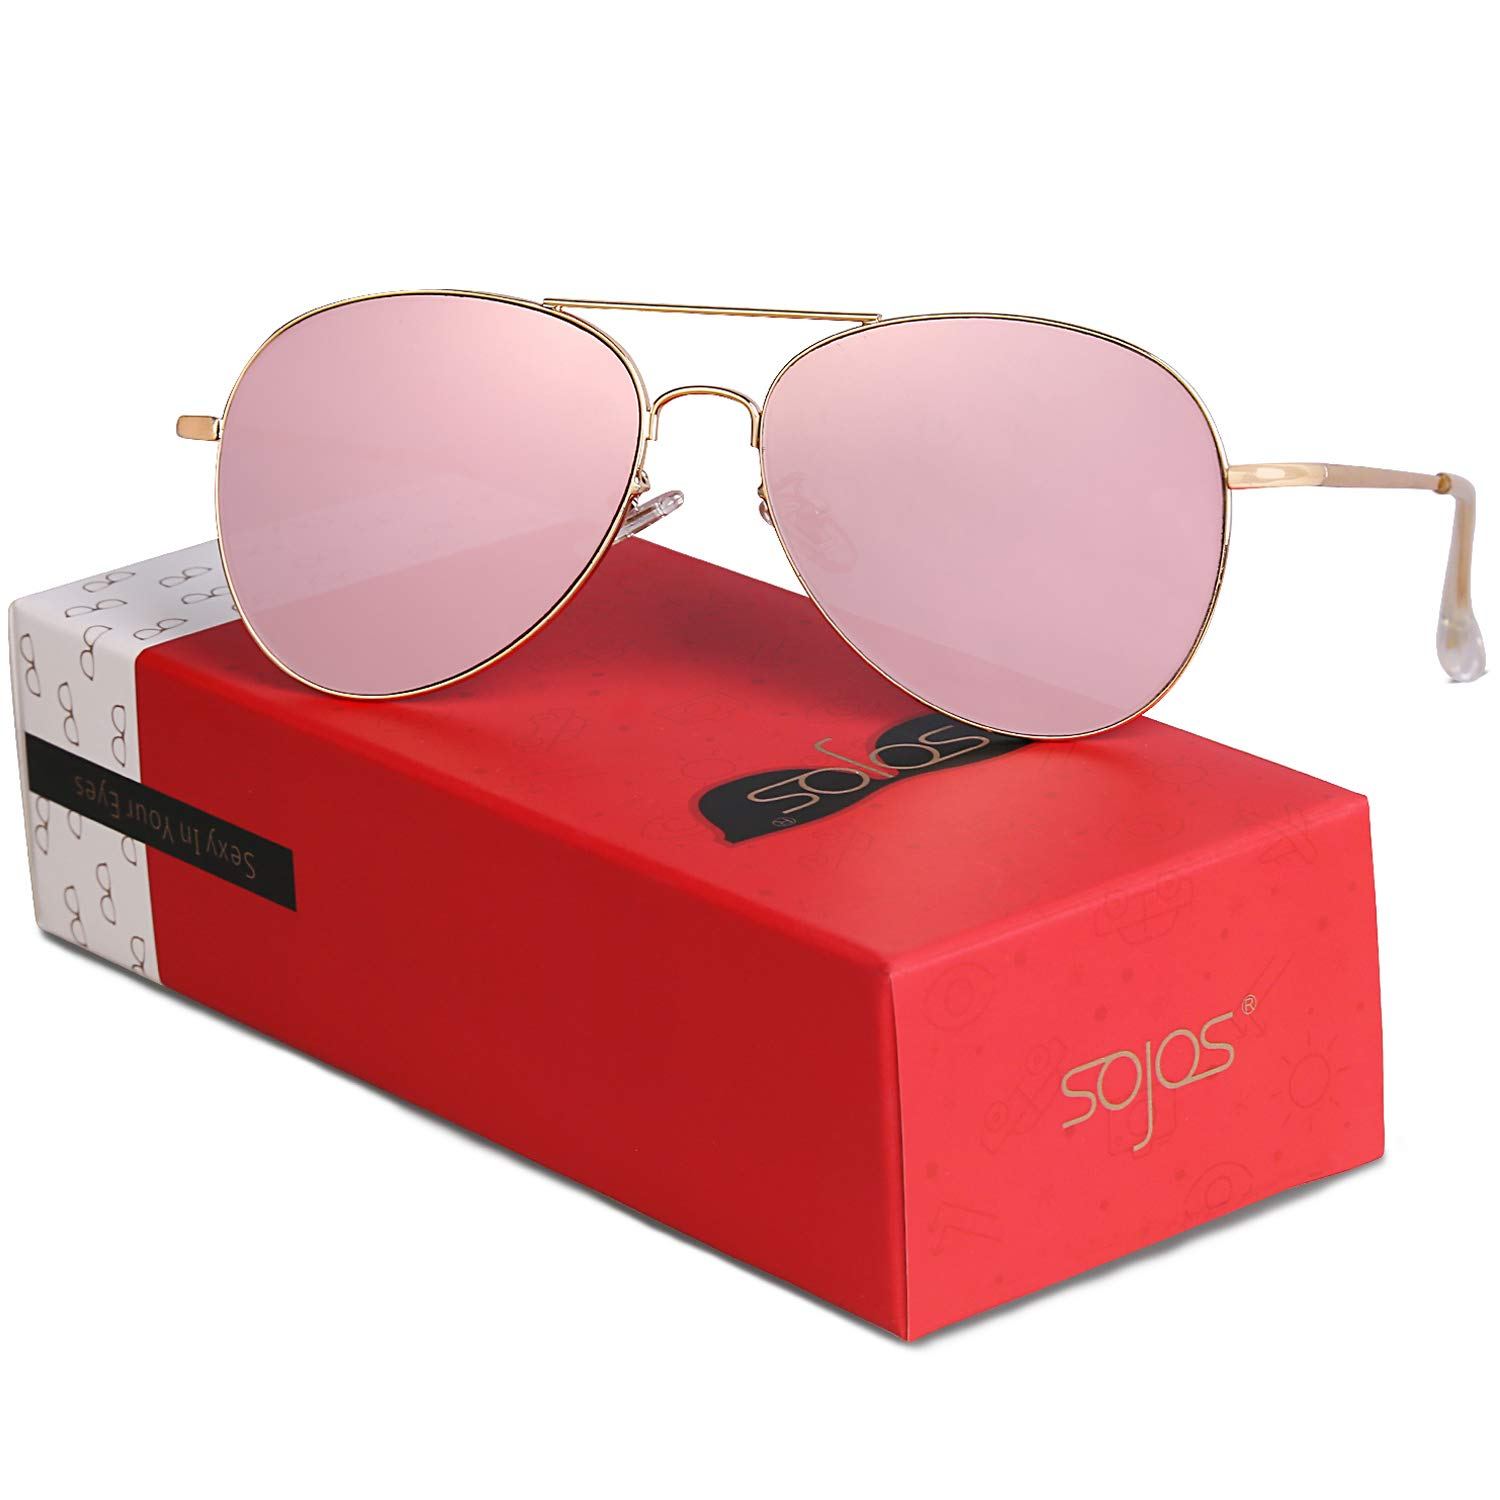 SOJOS Classic Aviator Mirrored Flat Lens Sunglasses Metal Frame with Spring Hinges SJ1030 (C13 Gold Frame/Pink Mirrored Lens with Gift Box, 58)